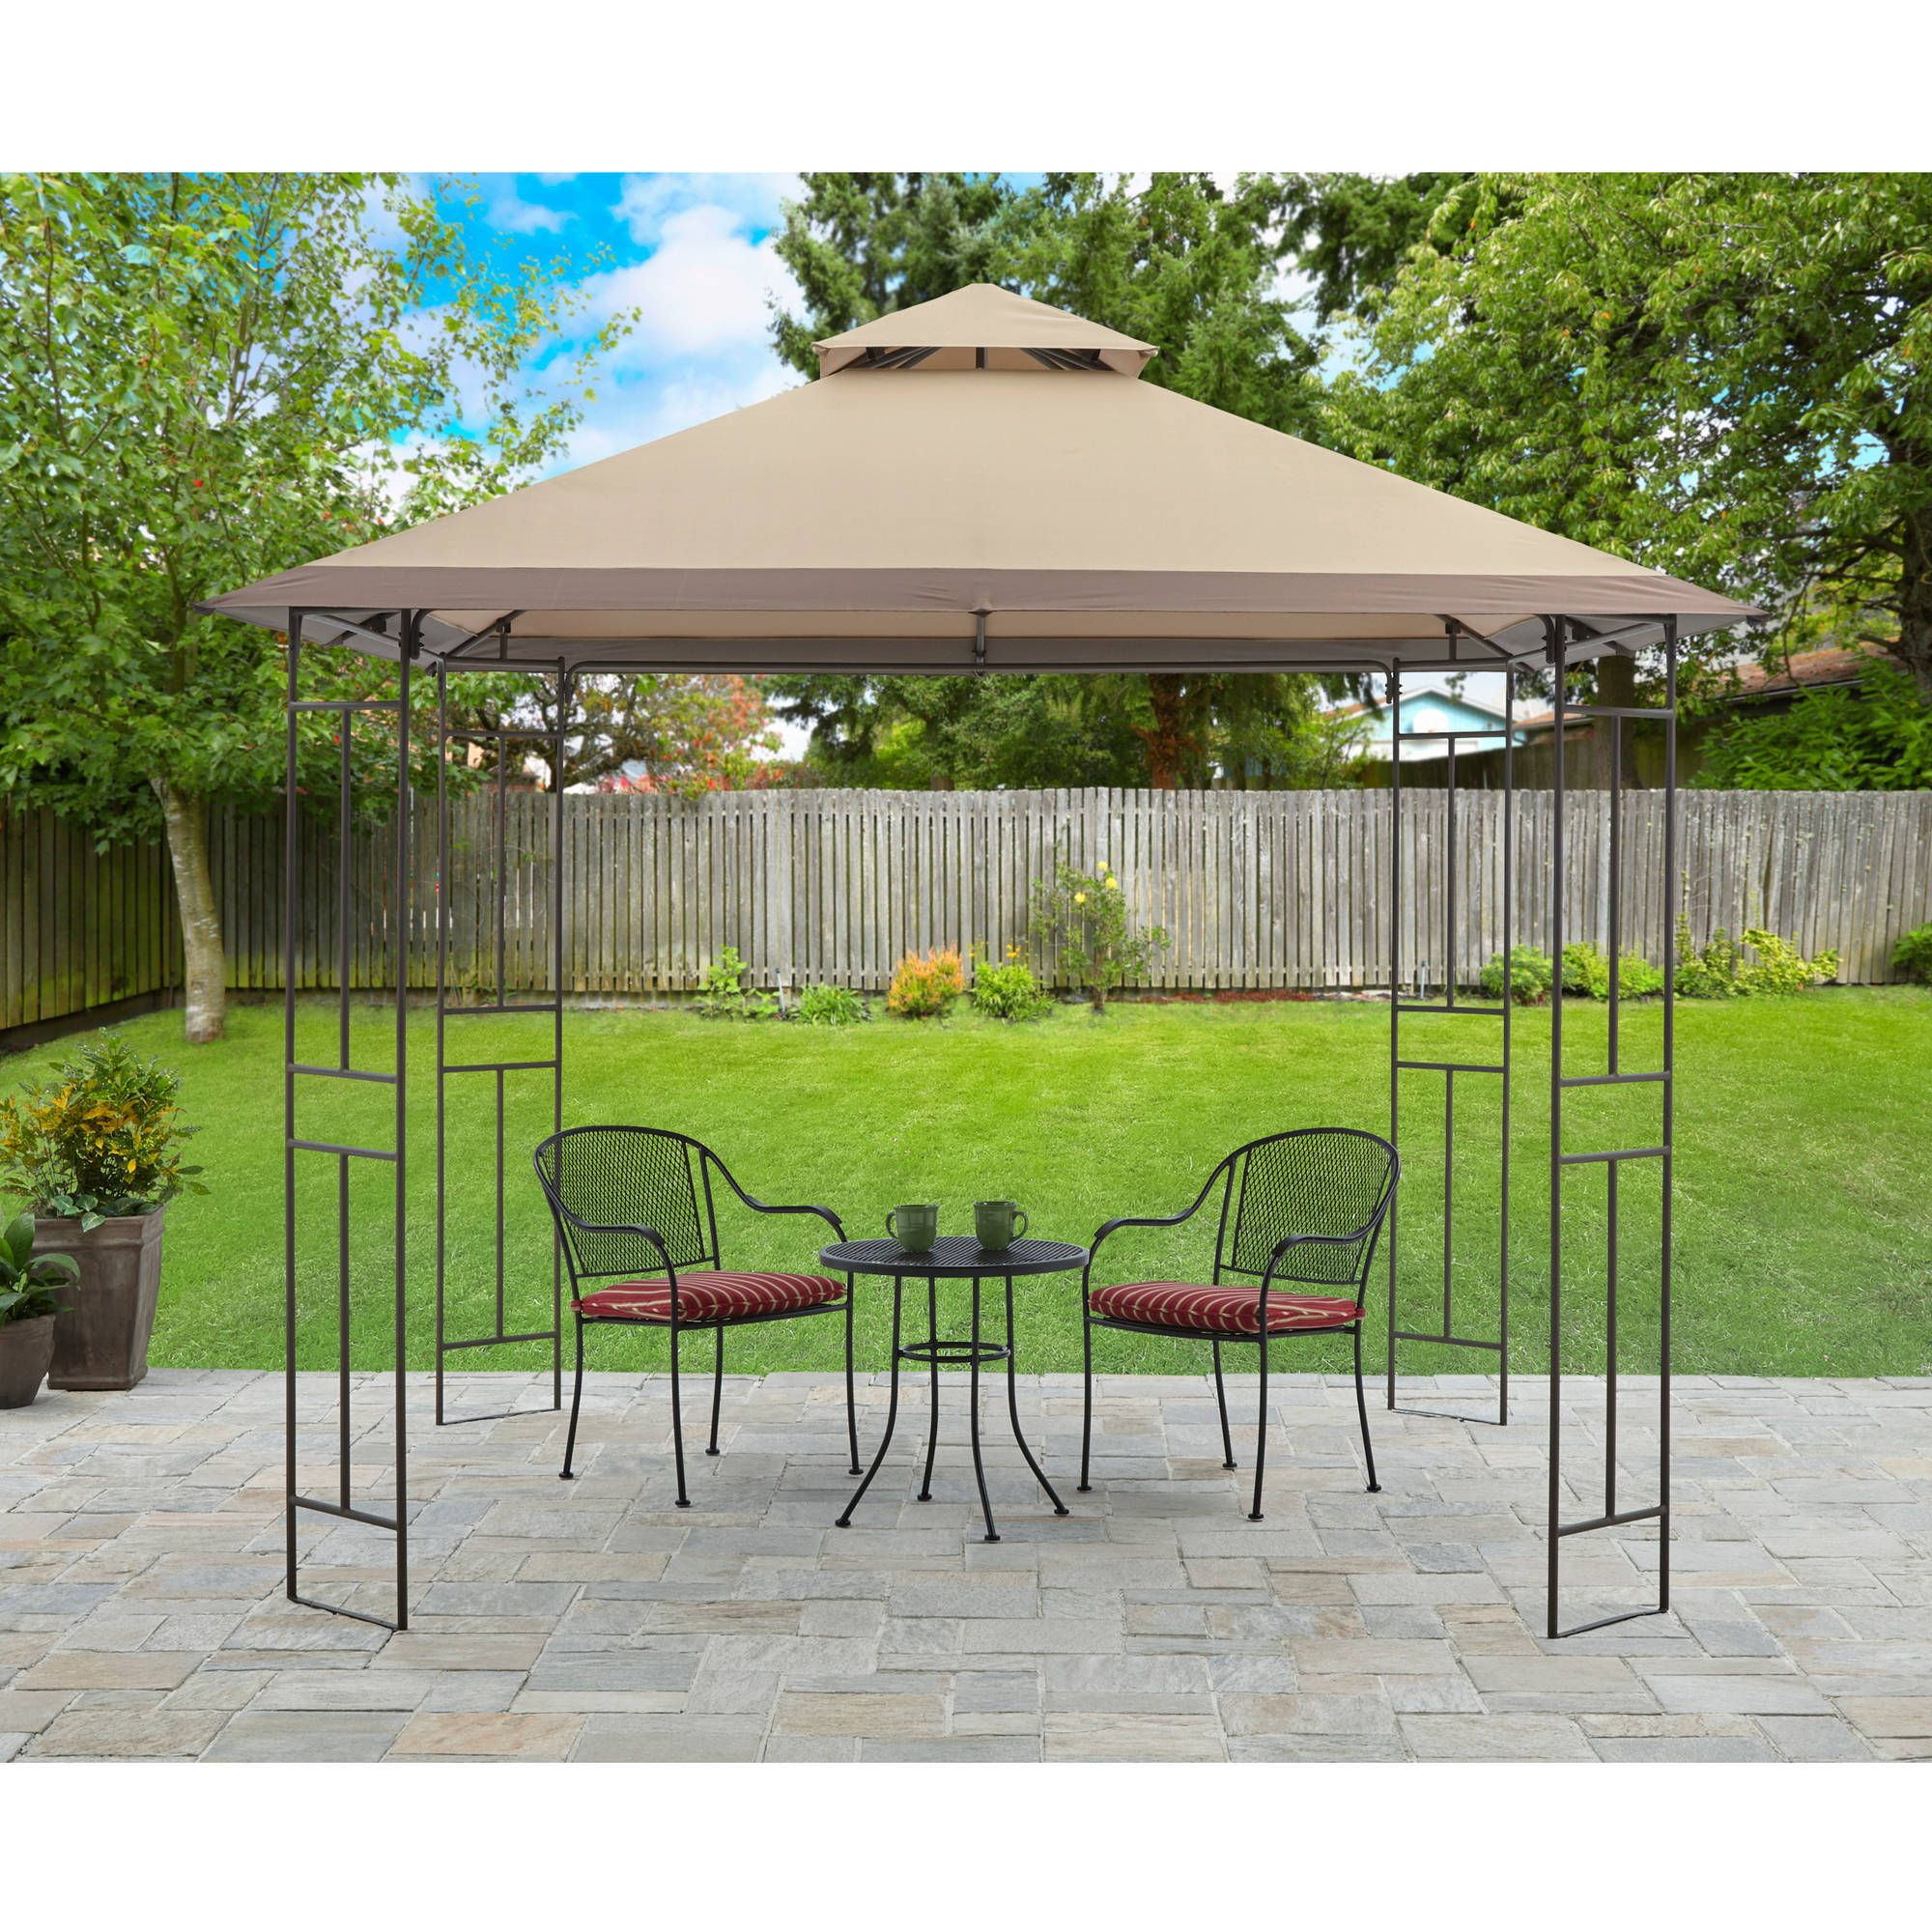 Mainstays Toni Gazebo 10 X 10 Patio Gazebo Outdoor Gazebos Patio